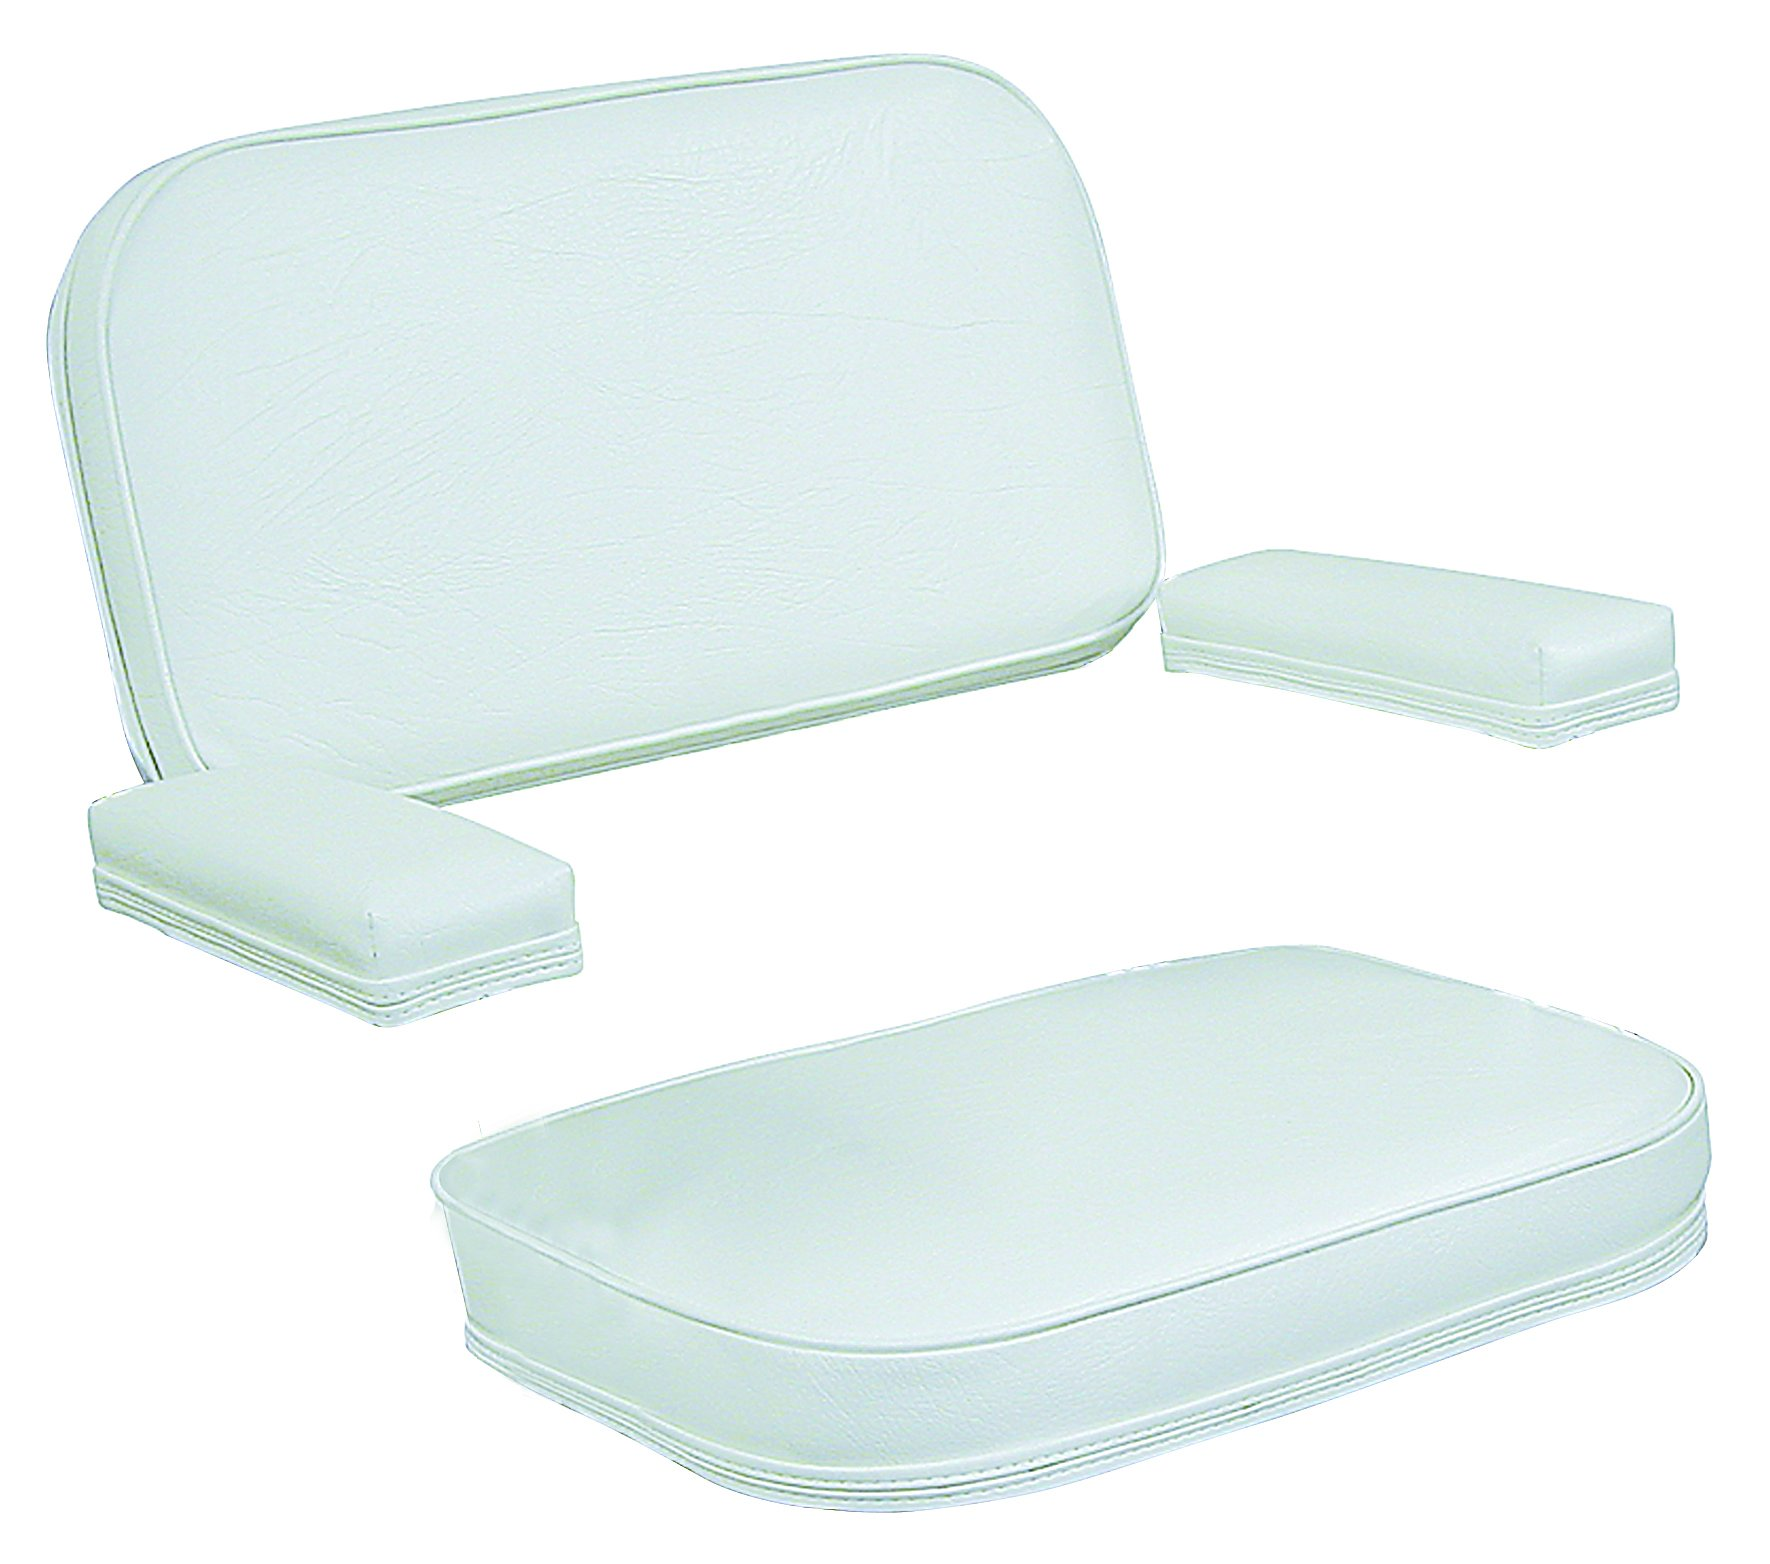 Wise 120AB Series Deck Chair Replacement Cushions and Arm Pads, White by Wise